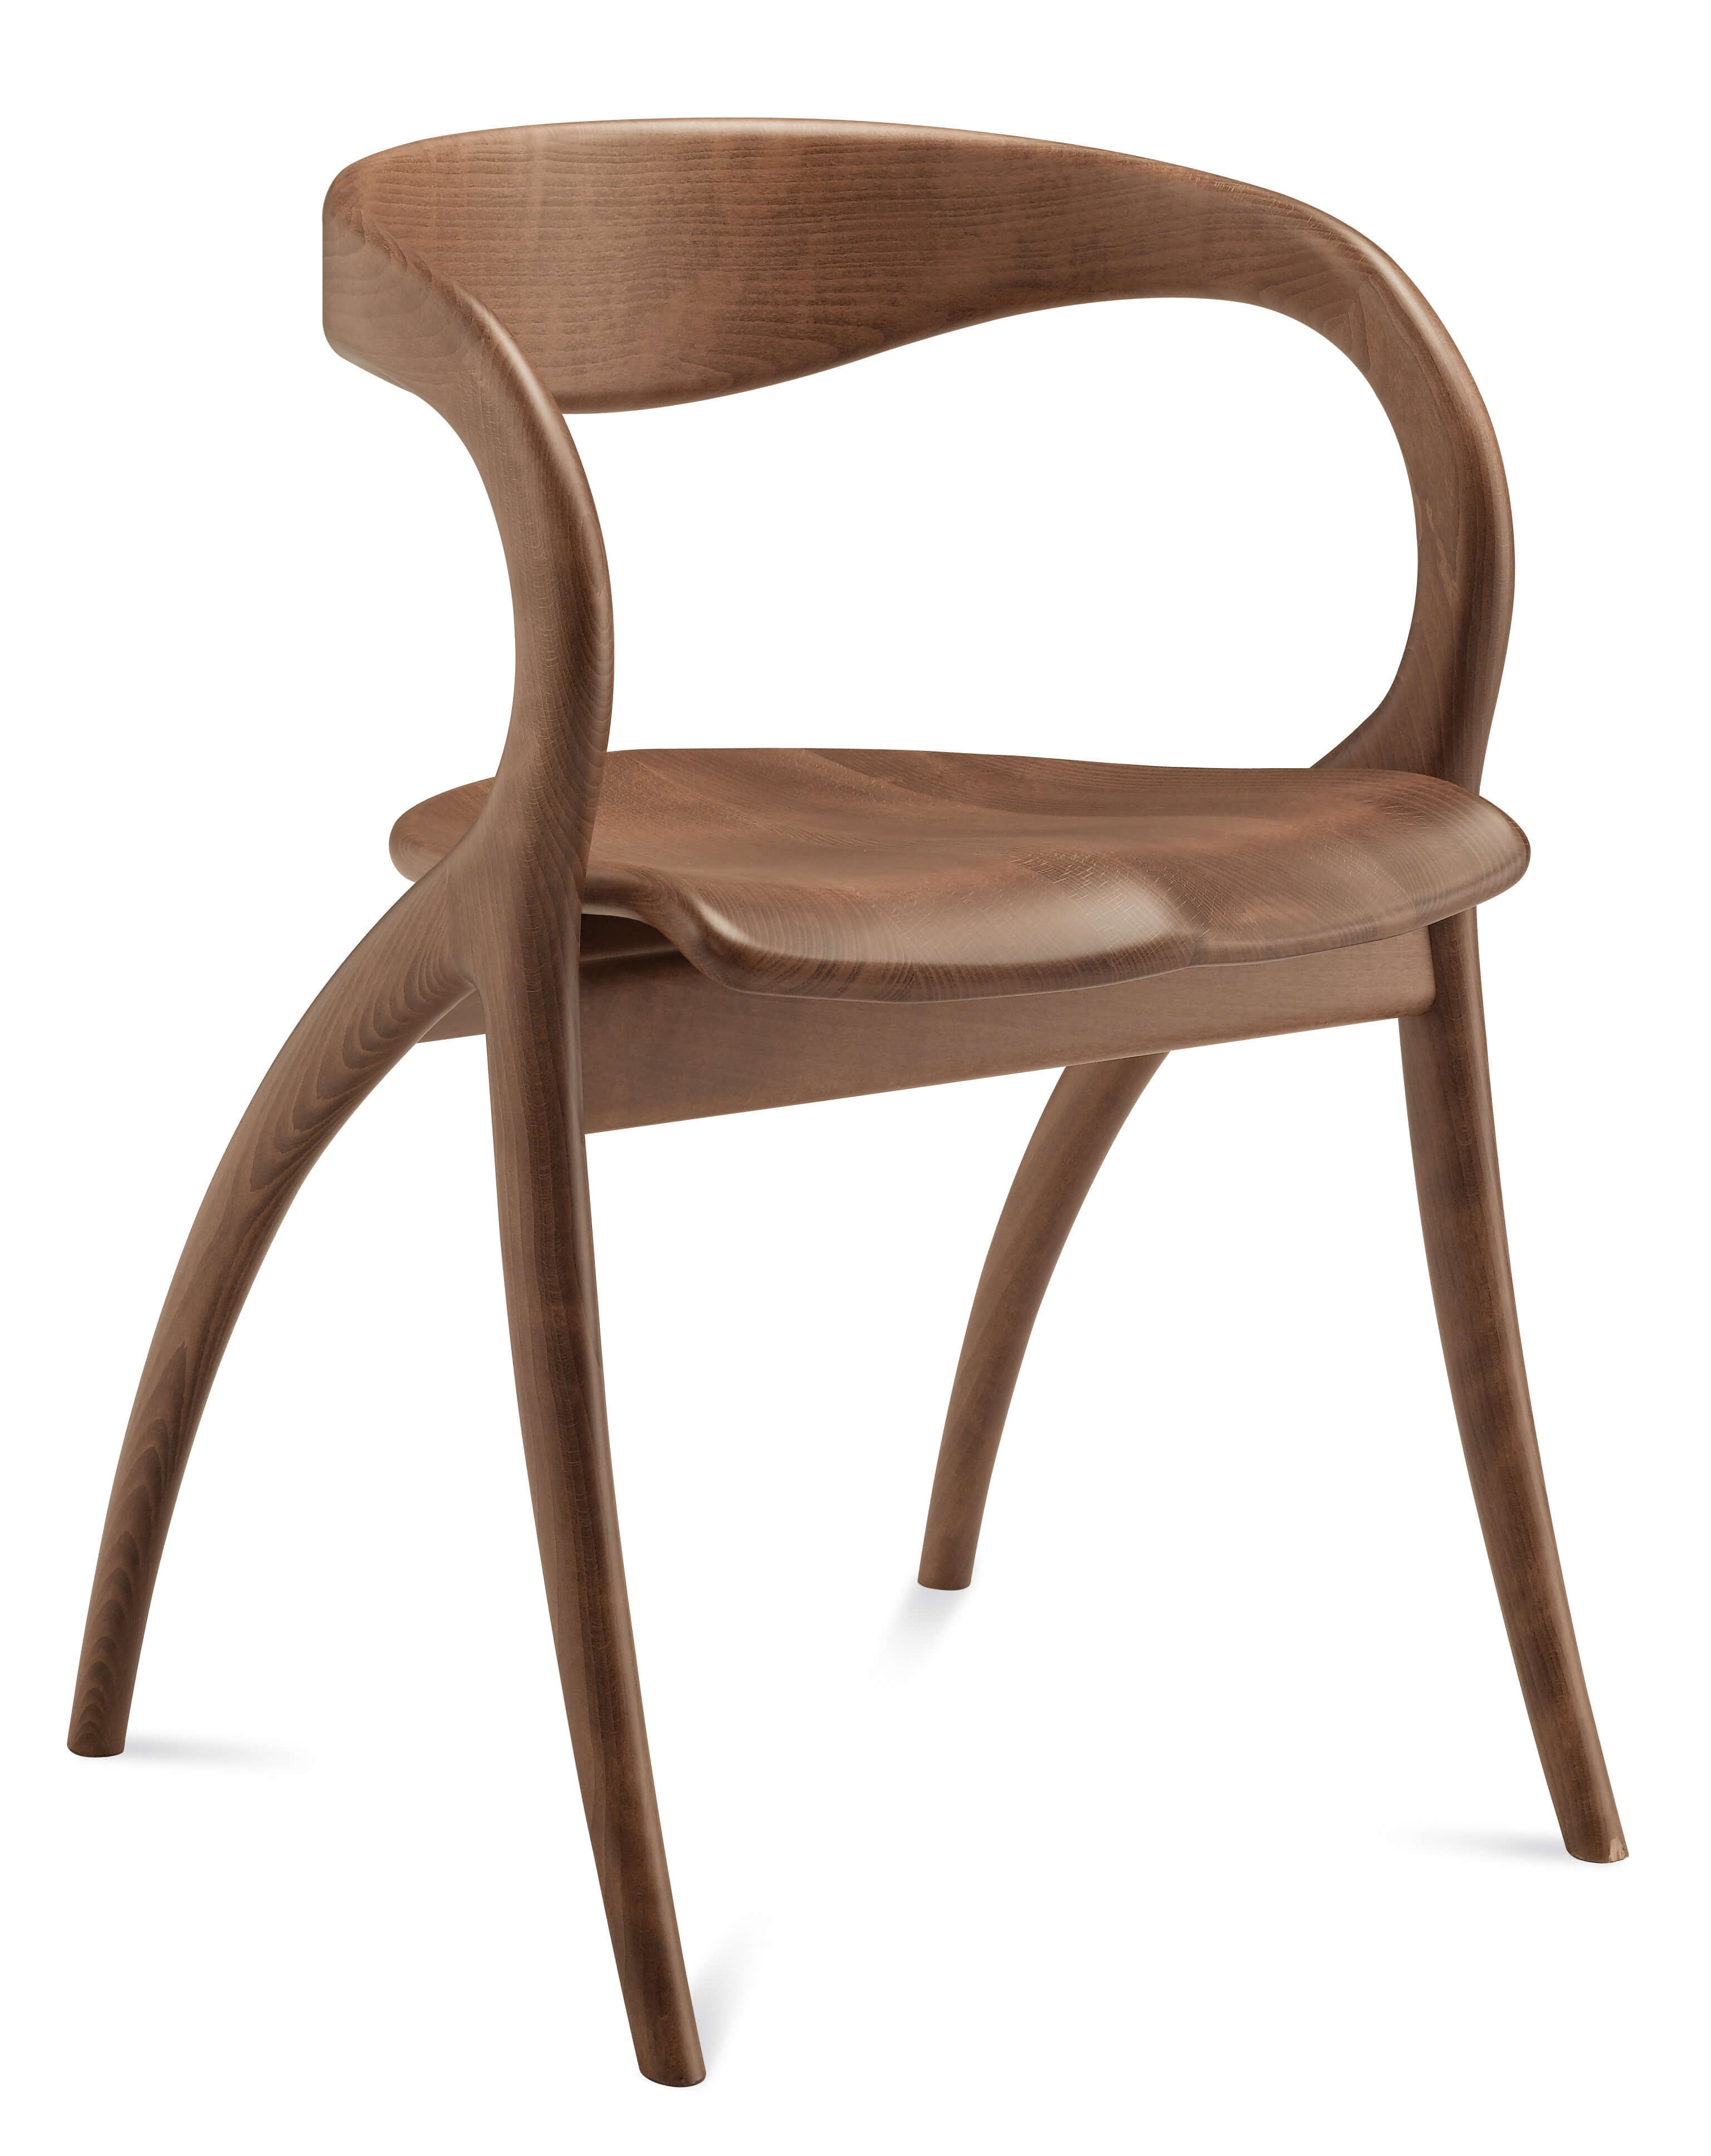 Star Dining Chair By DomItalia, Italy Buy Online At Best Price   SohoMod